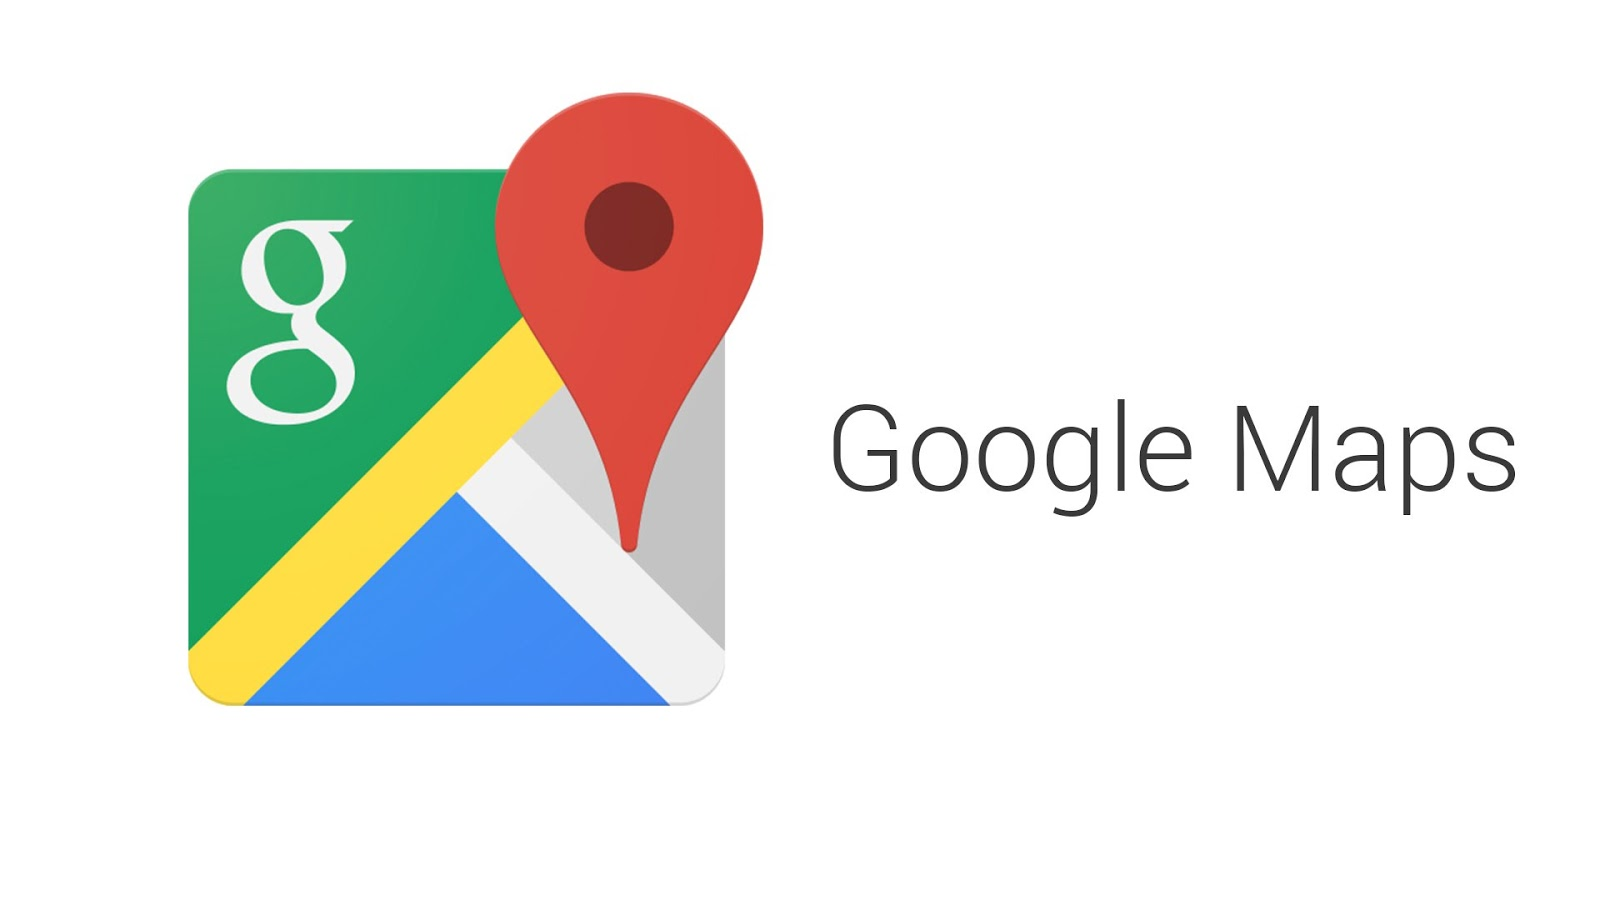 Google Maps apk Learn and download today for your Android - Android